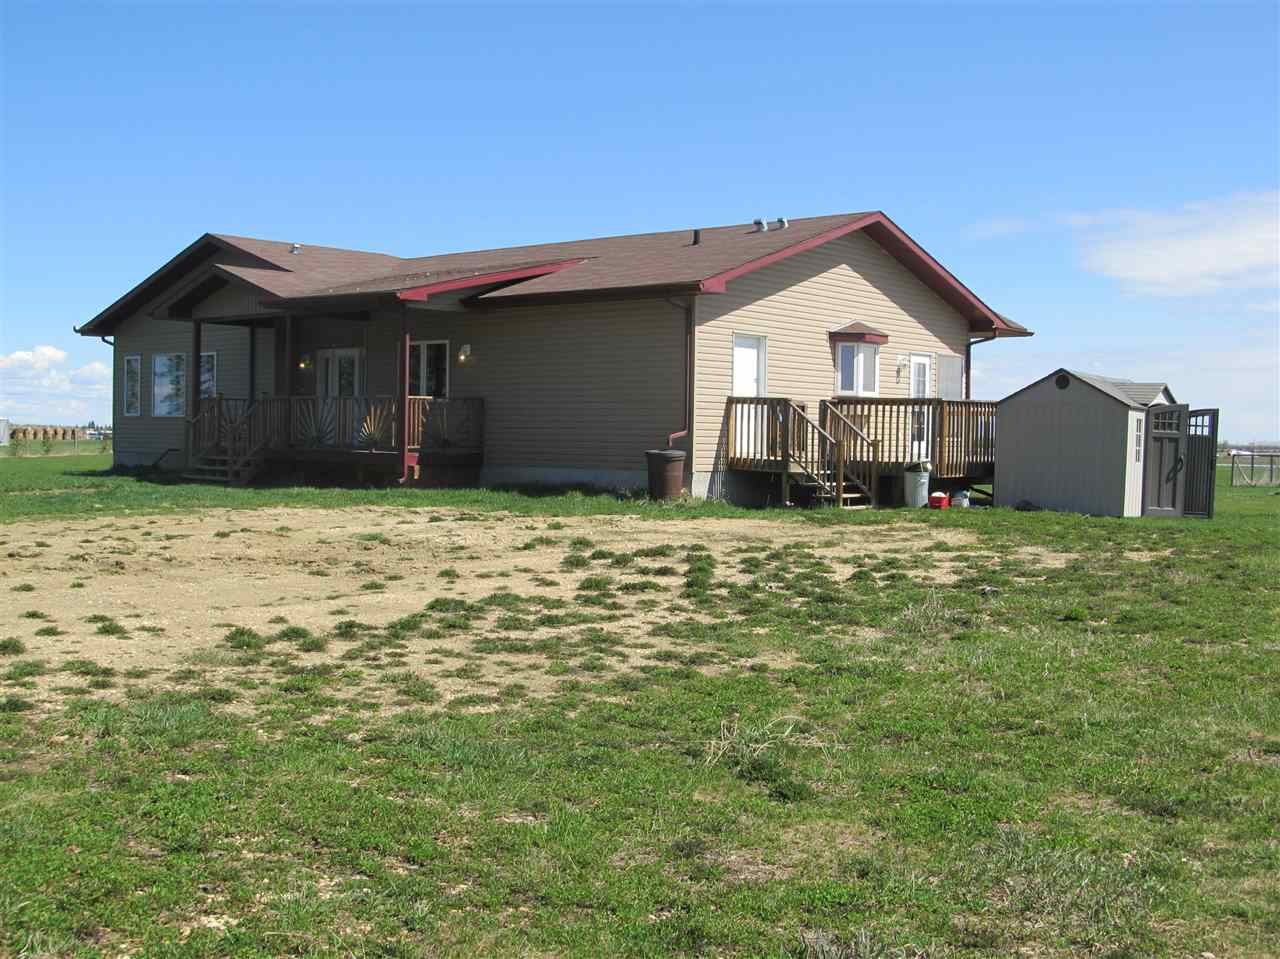 Photo 29: 58303 RR 263: Rural Westlock County House for sale : MLS® # E4072279